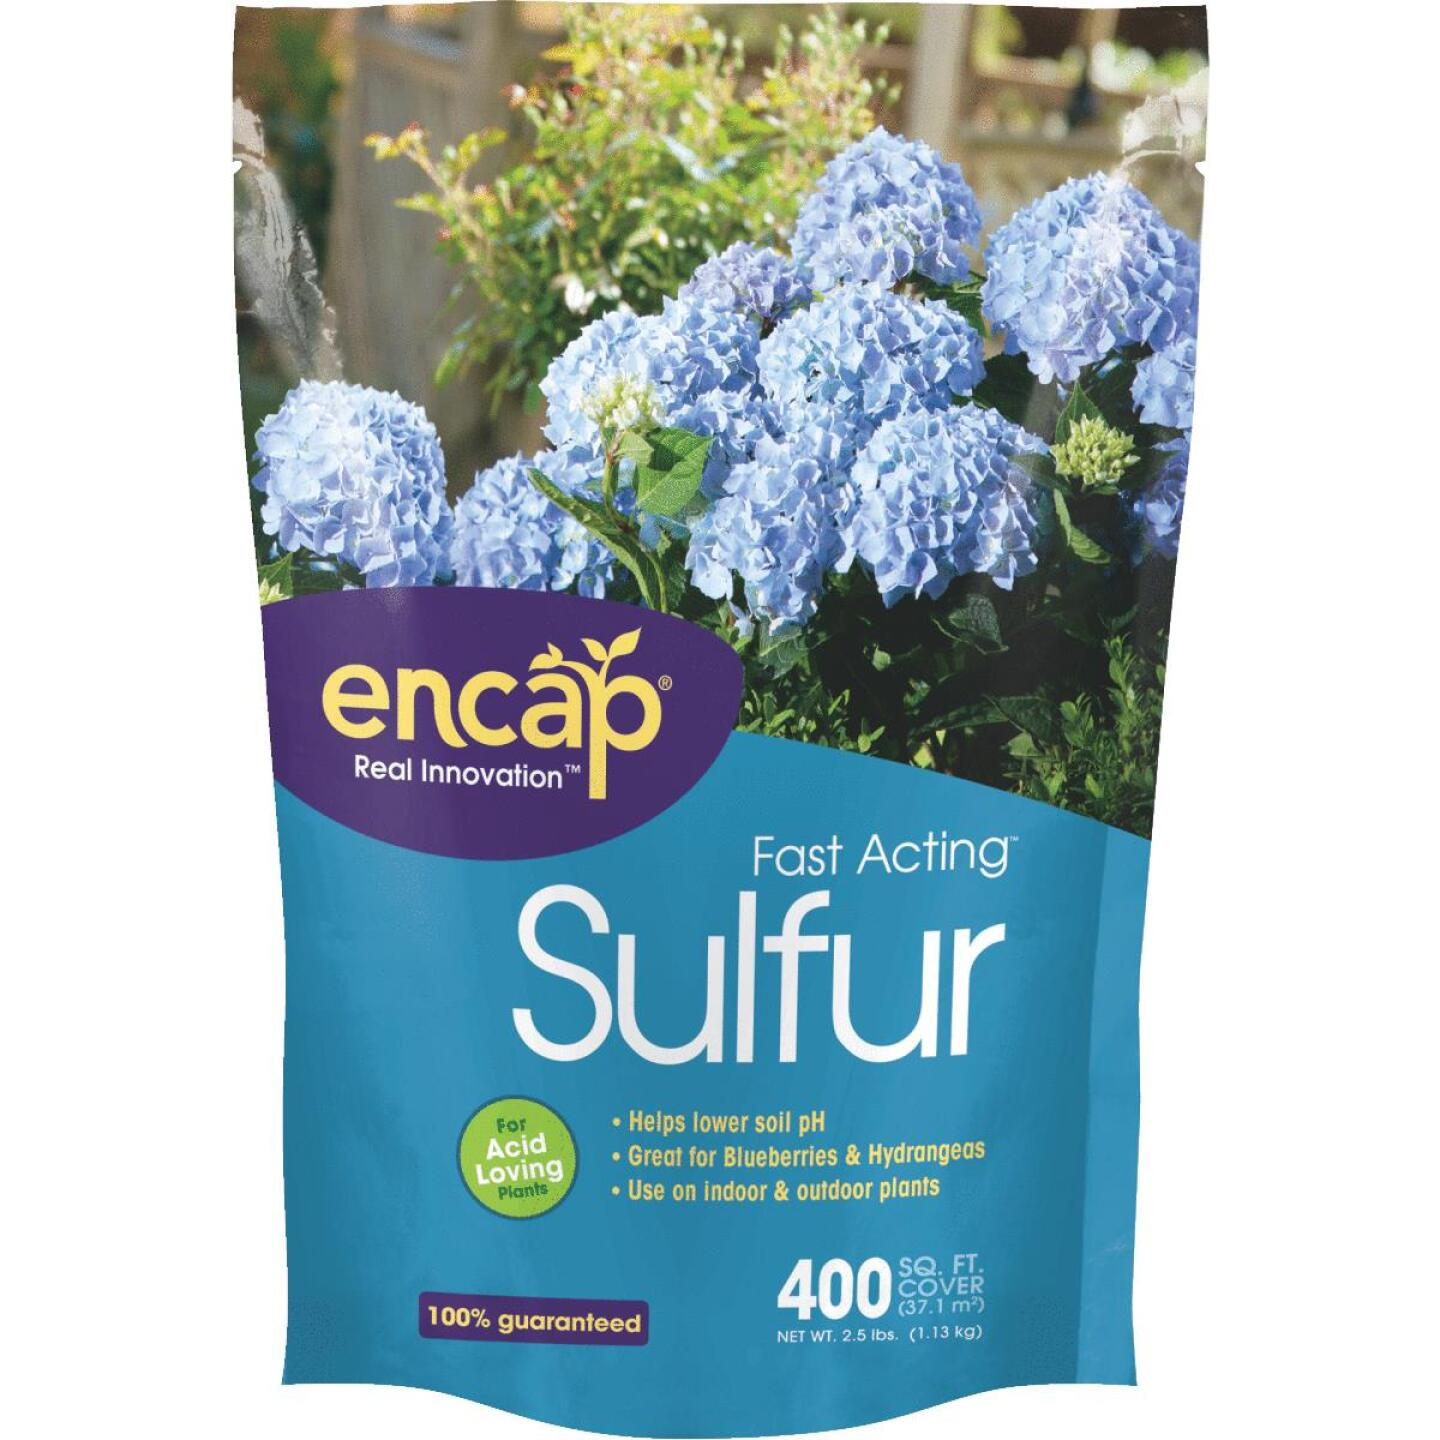 Encap 2.5 Lb. 1250 Sq. Ft. Coverage Fast Acting Sulfur Image 1